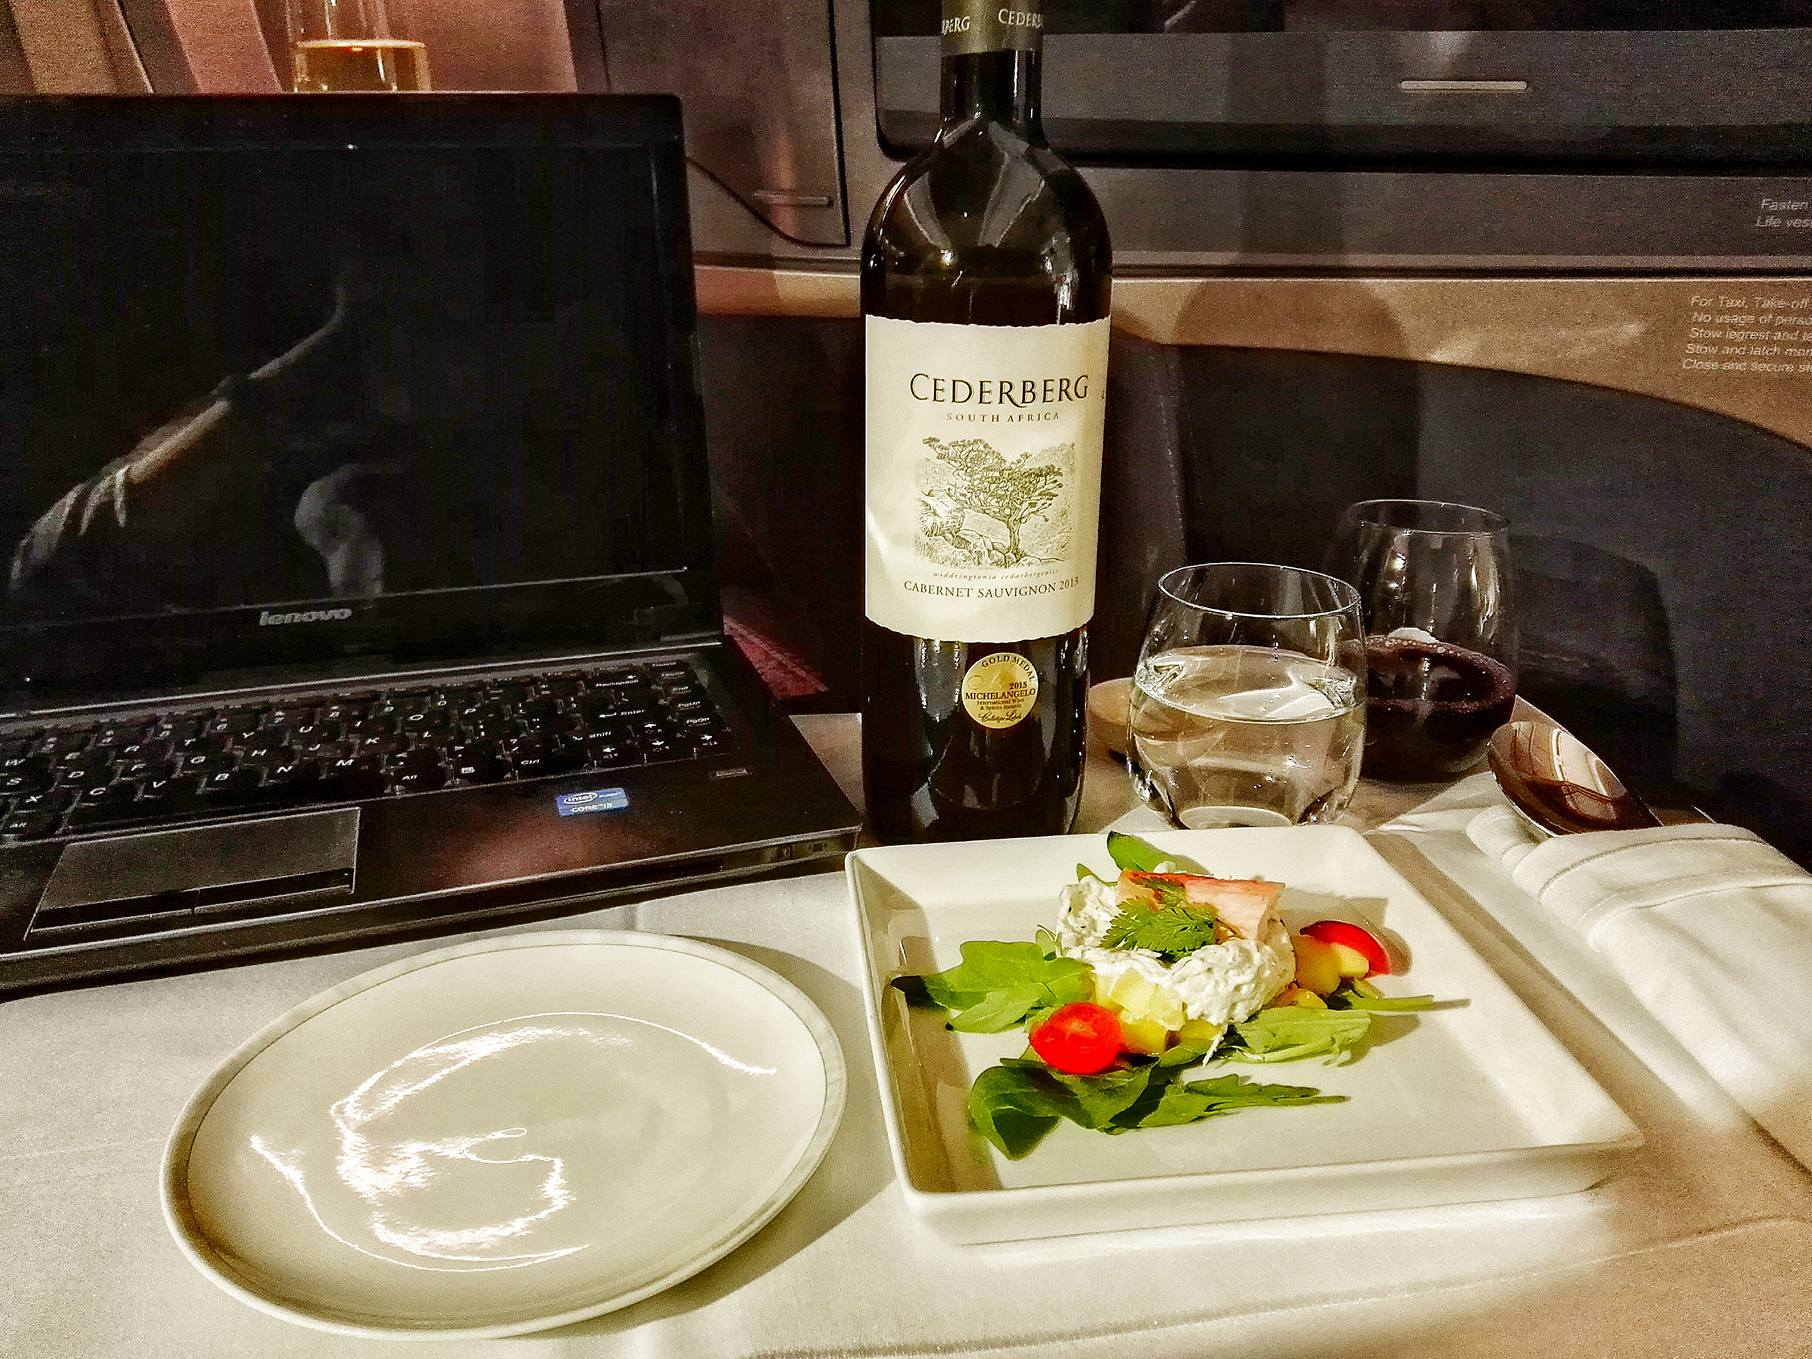 Cederberg Cabernet Sauvignon Wine Promotion Onboard Singapore Airlines Business Class- Singapore to Dusseldorf- Wifi Available- Airbus A350